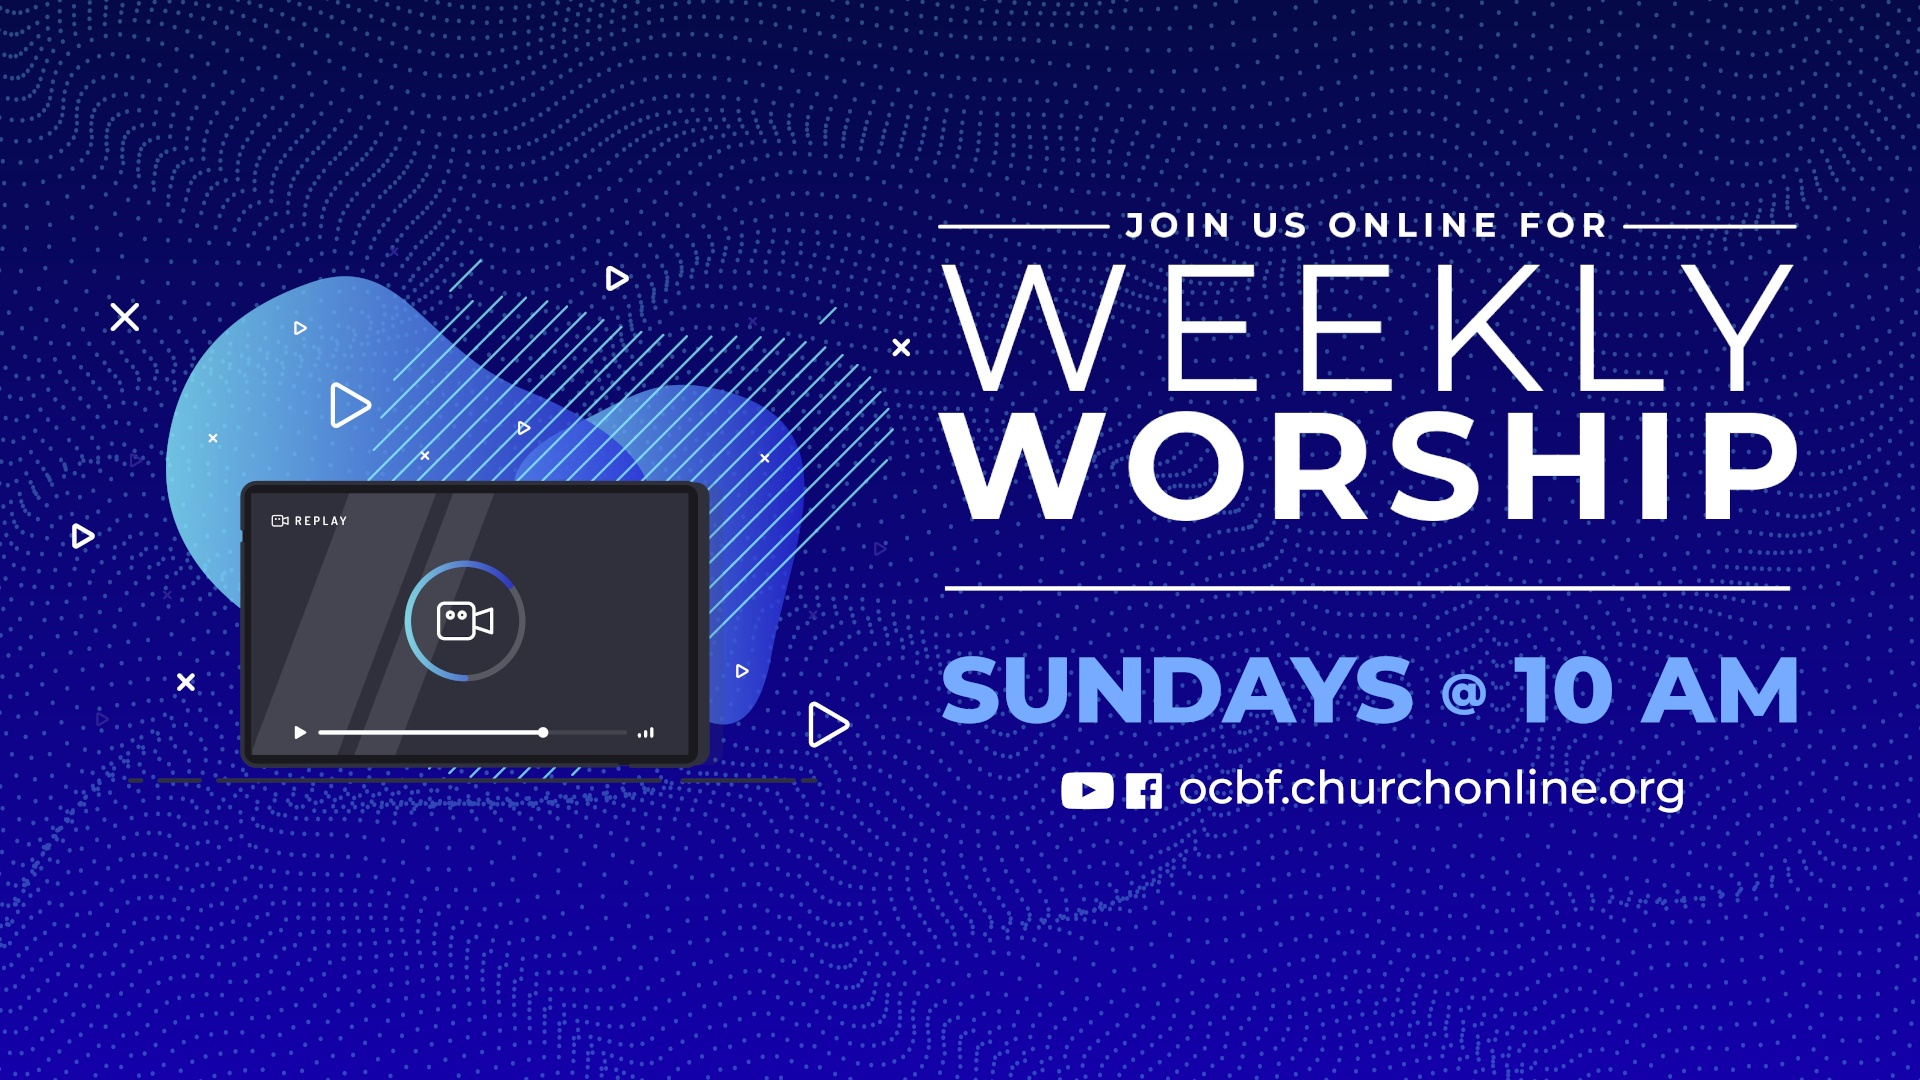 Watch OCBF Sunday Worship online at ocbf.churchonline.org